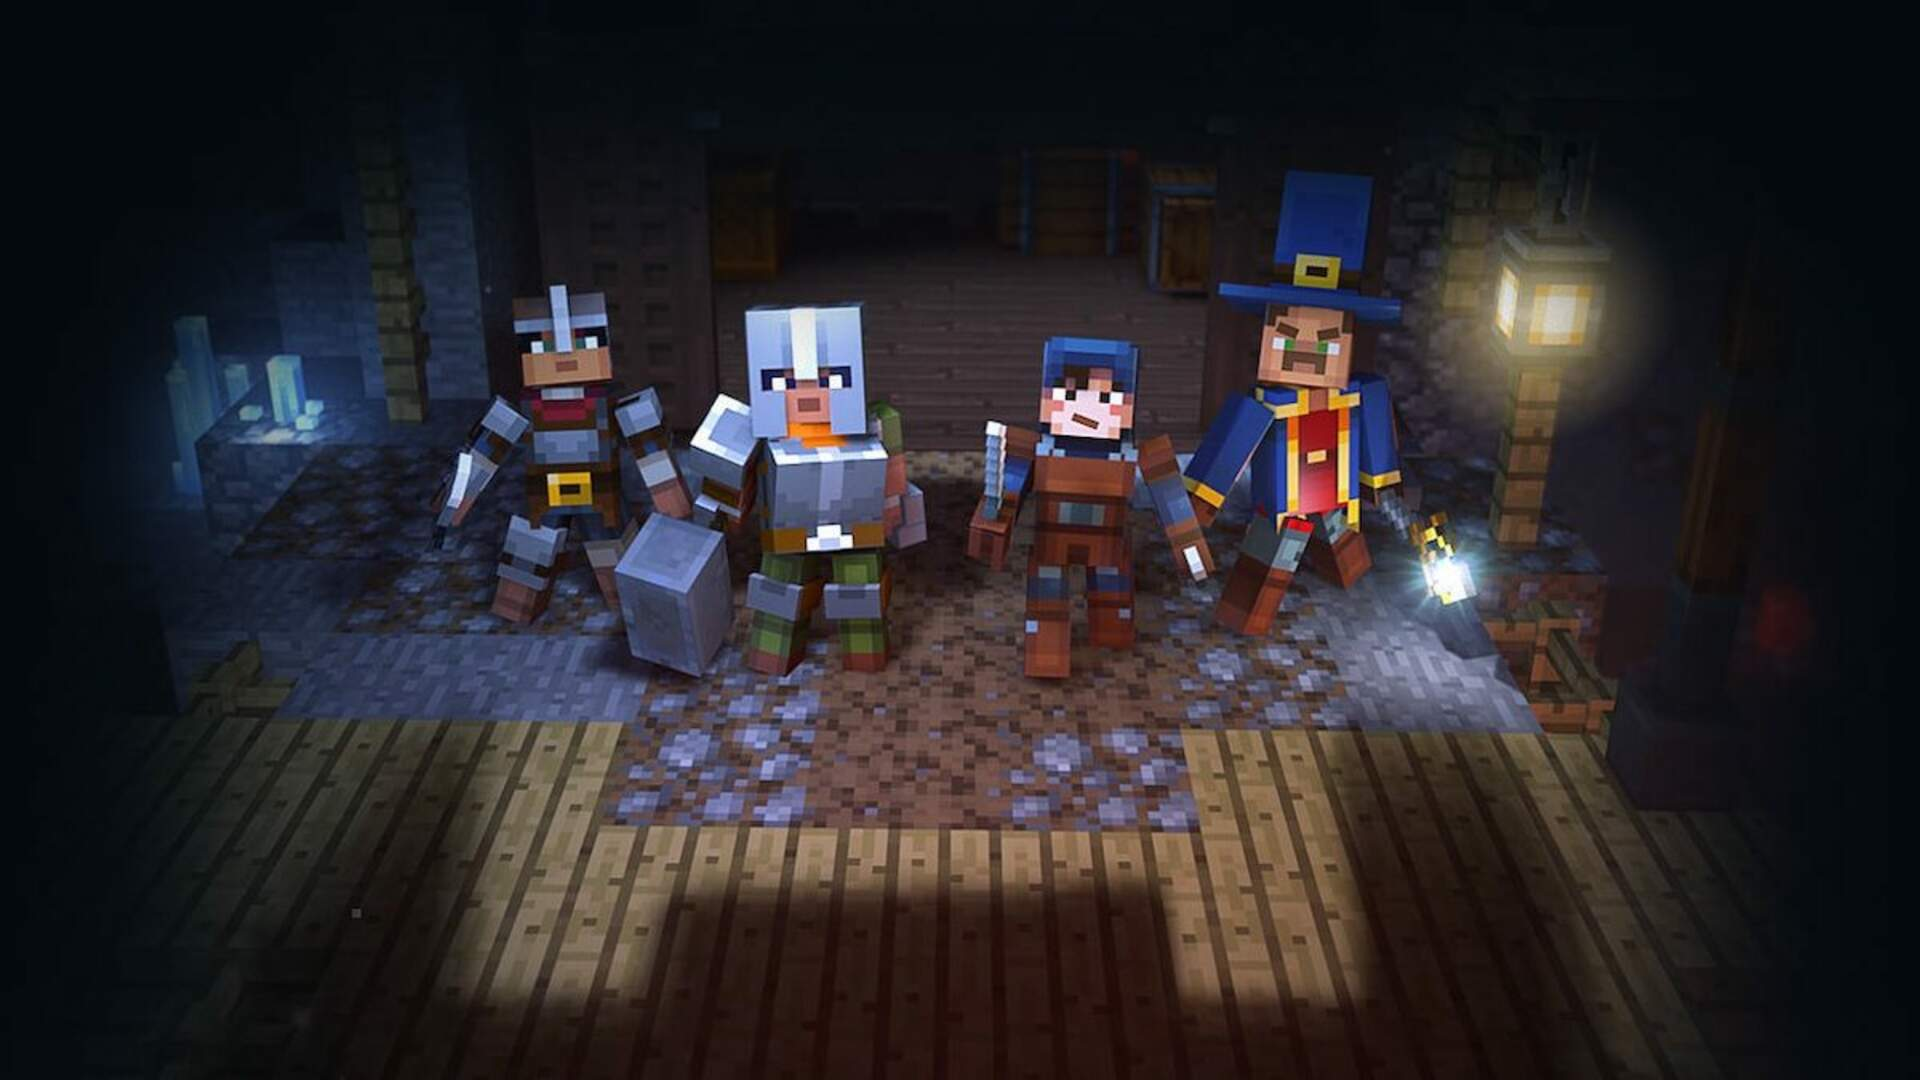 Minecraft Dungeons: How to Find and Beat the Skeleton Horsemen Secret Boss Fight